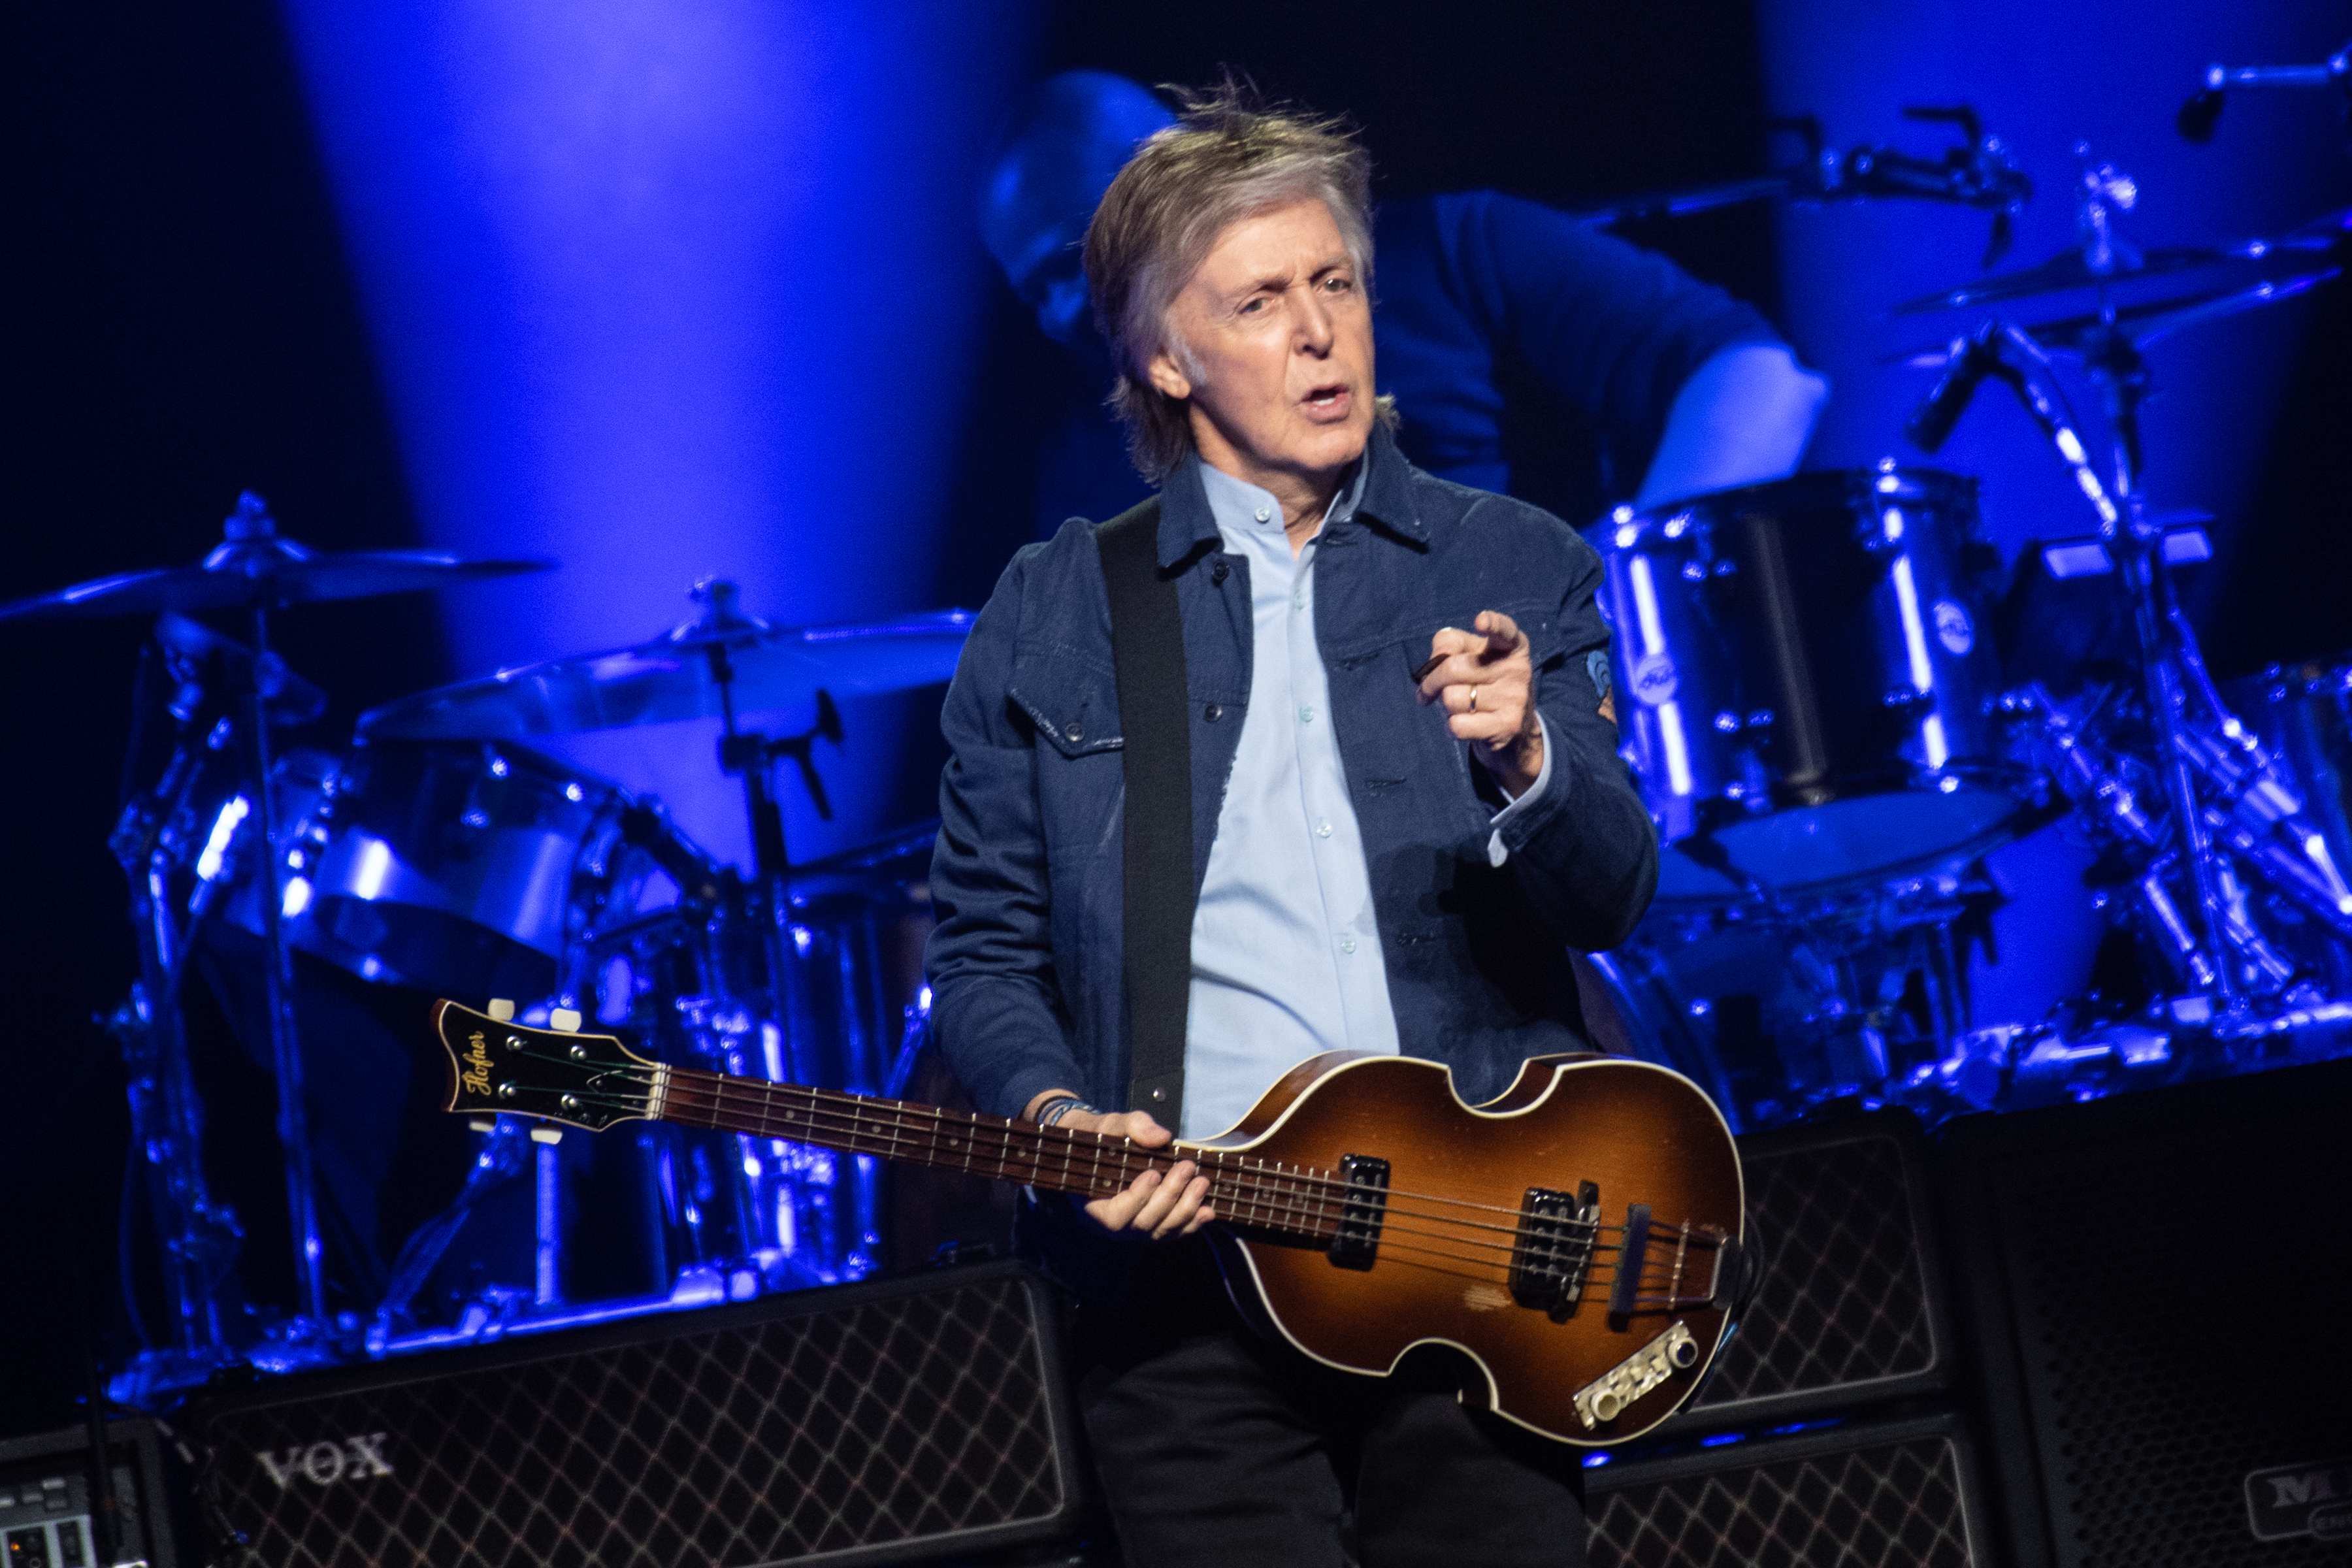 Sir Paul McCartney performs on stage at The SSE Hydro on December 14, 2018 in Glasgow, Scotland.